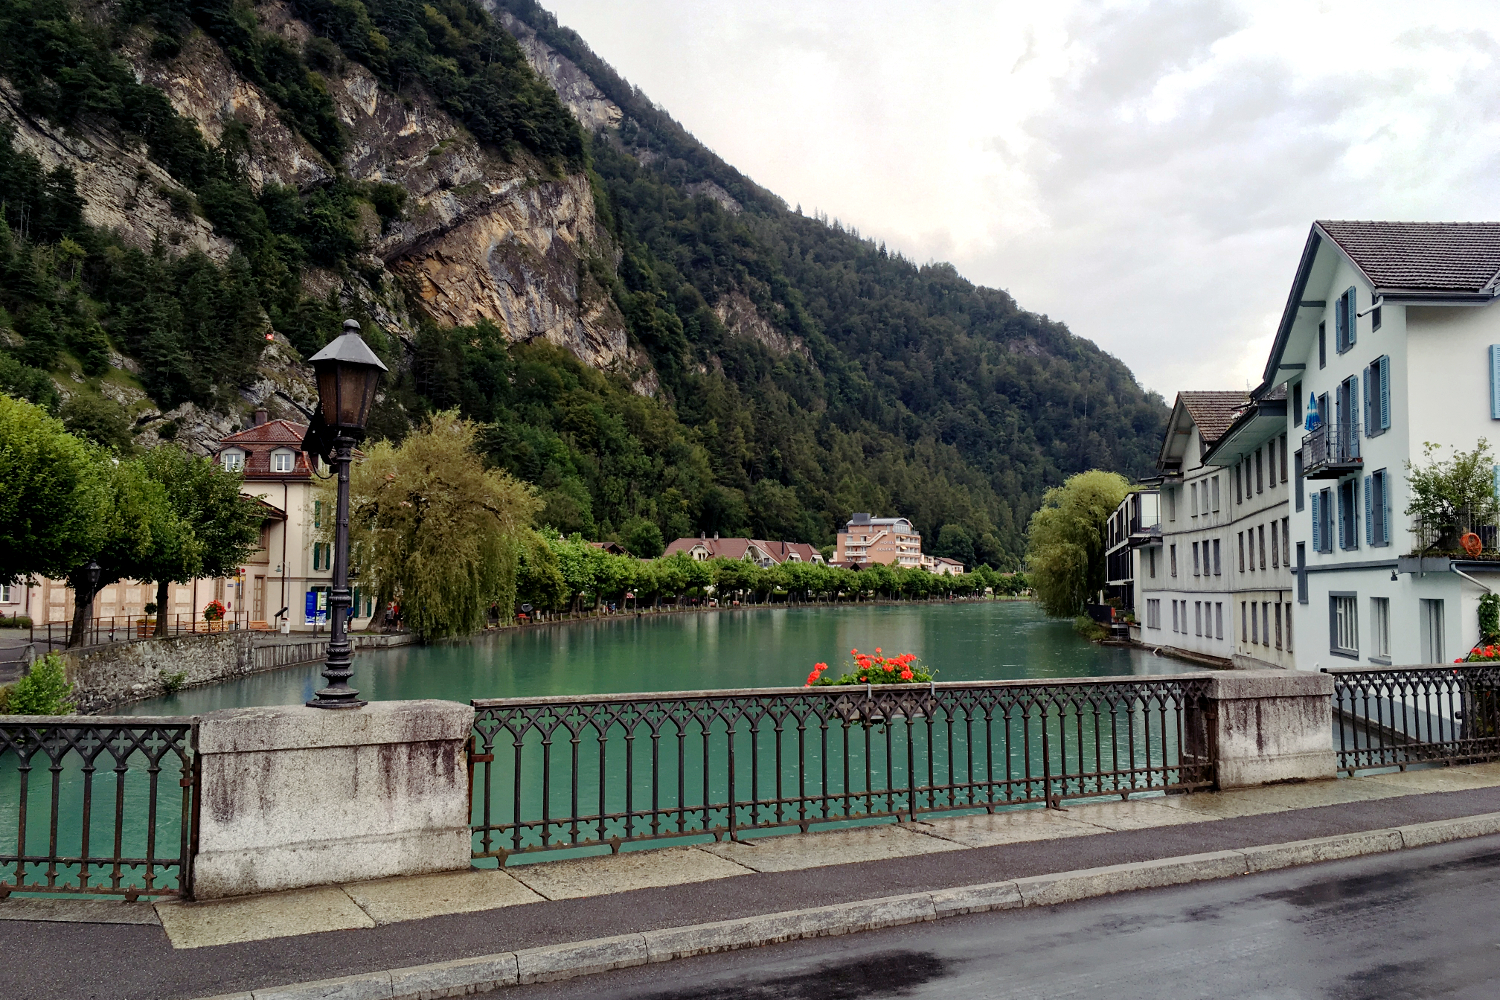 River Aare in Interlaken, Switzerland